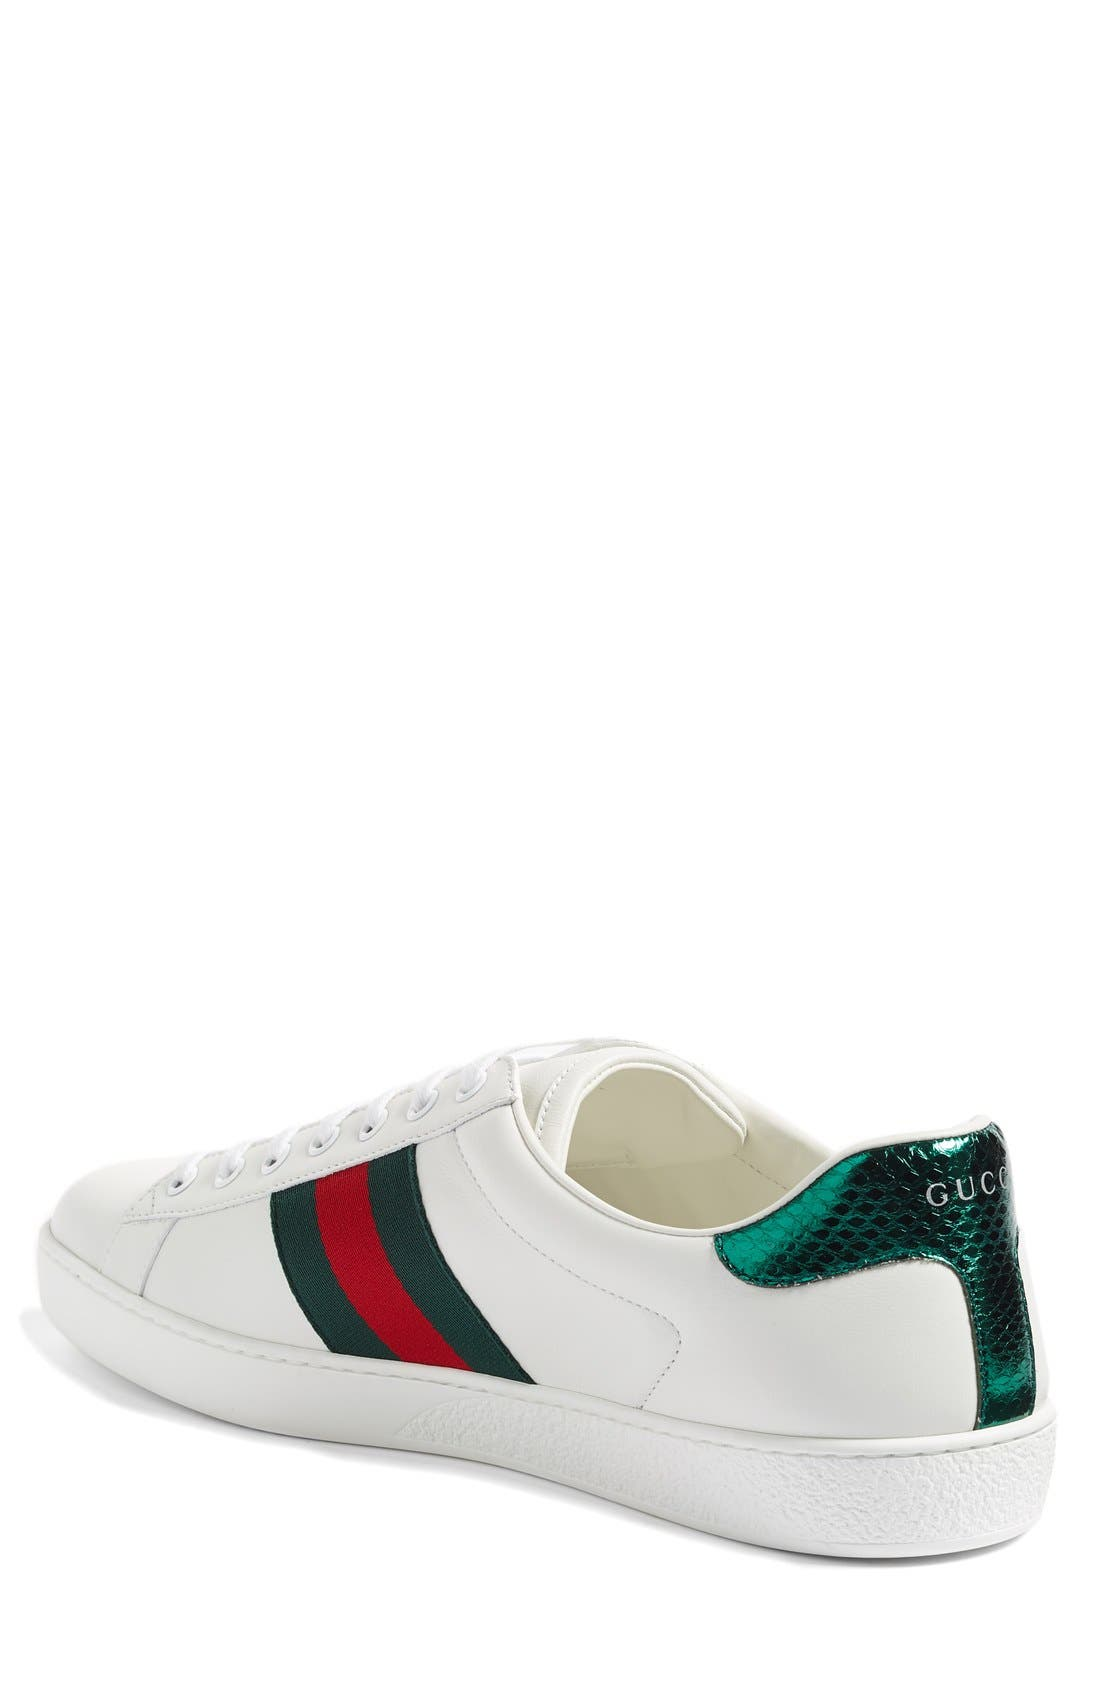 'New Ace' Sneaker,                             Alternate thumbnail 3, color,                             BIANCO LEATHER